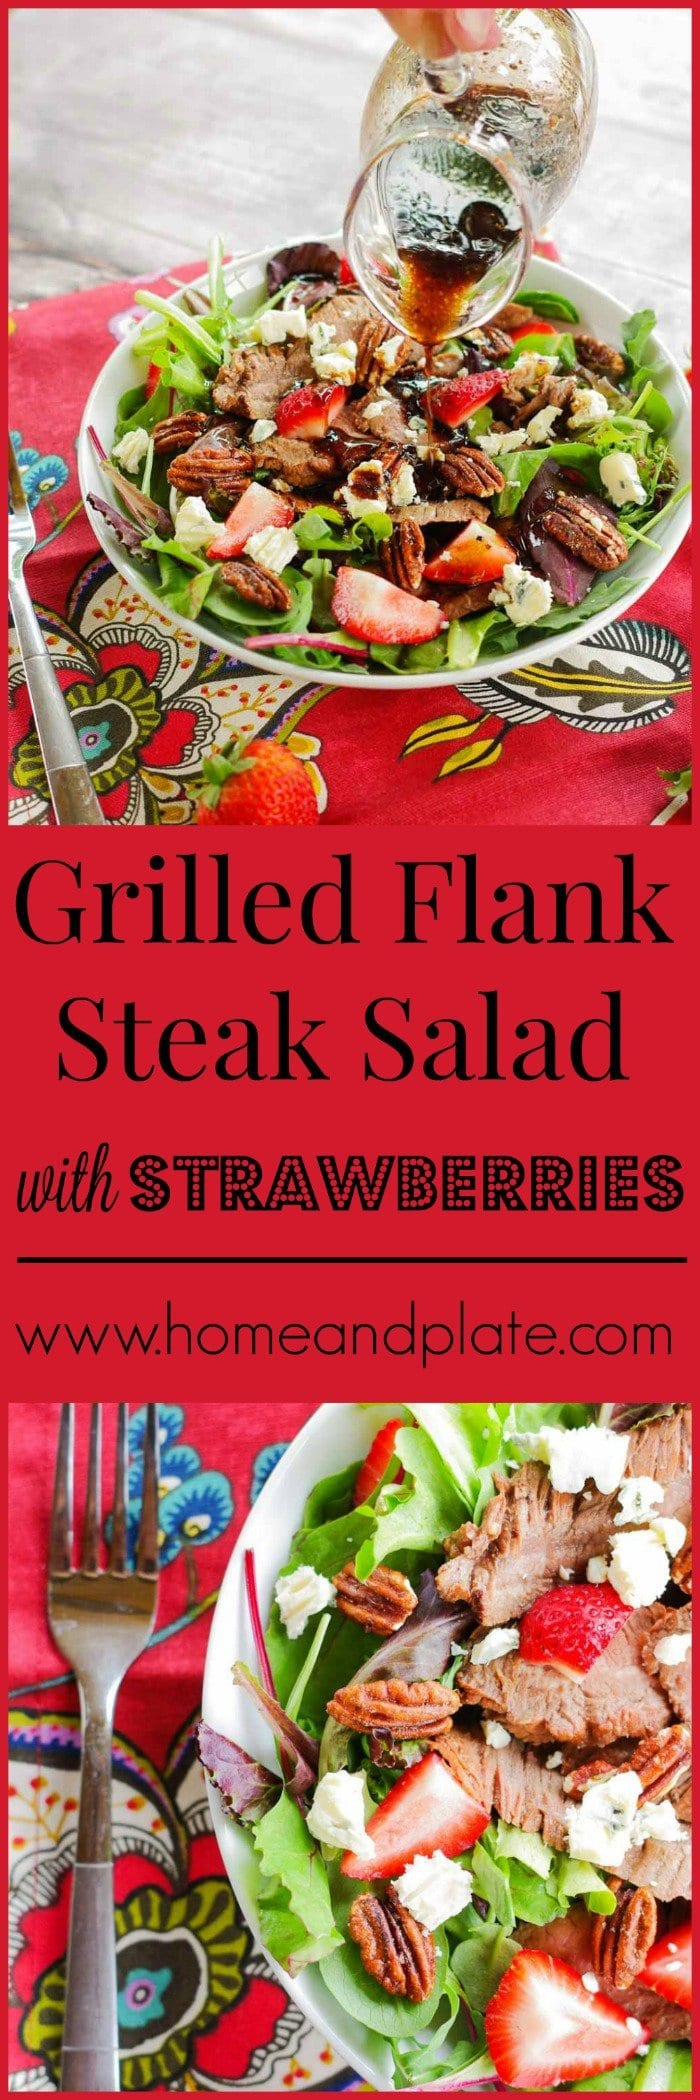 Flank Steak Salad with Strawberries |  This grilled Flank Steak Salad with Strawberries features marinated flank steak sliced thin and topped on a bed of greens with fresh summer strawberries.